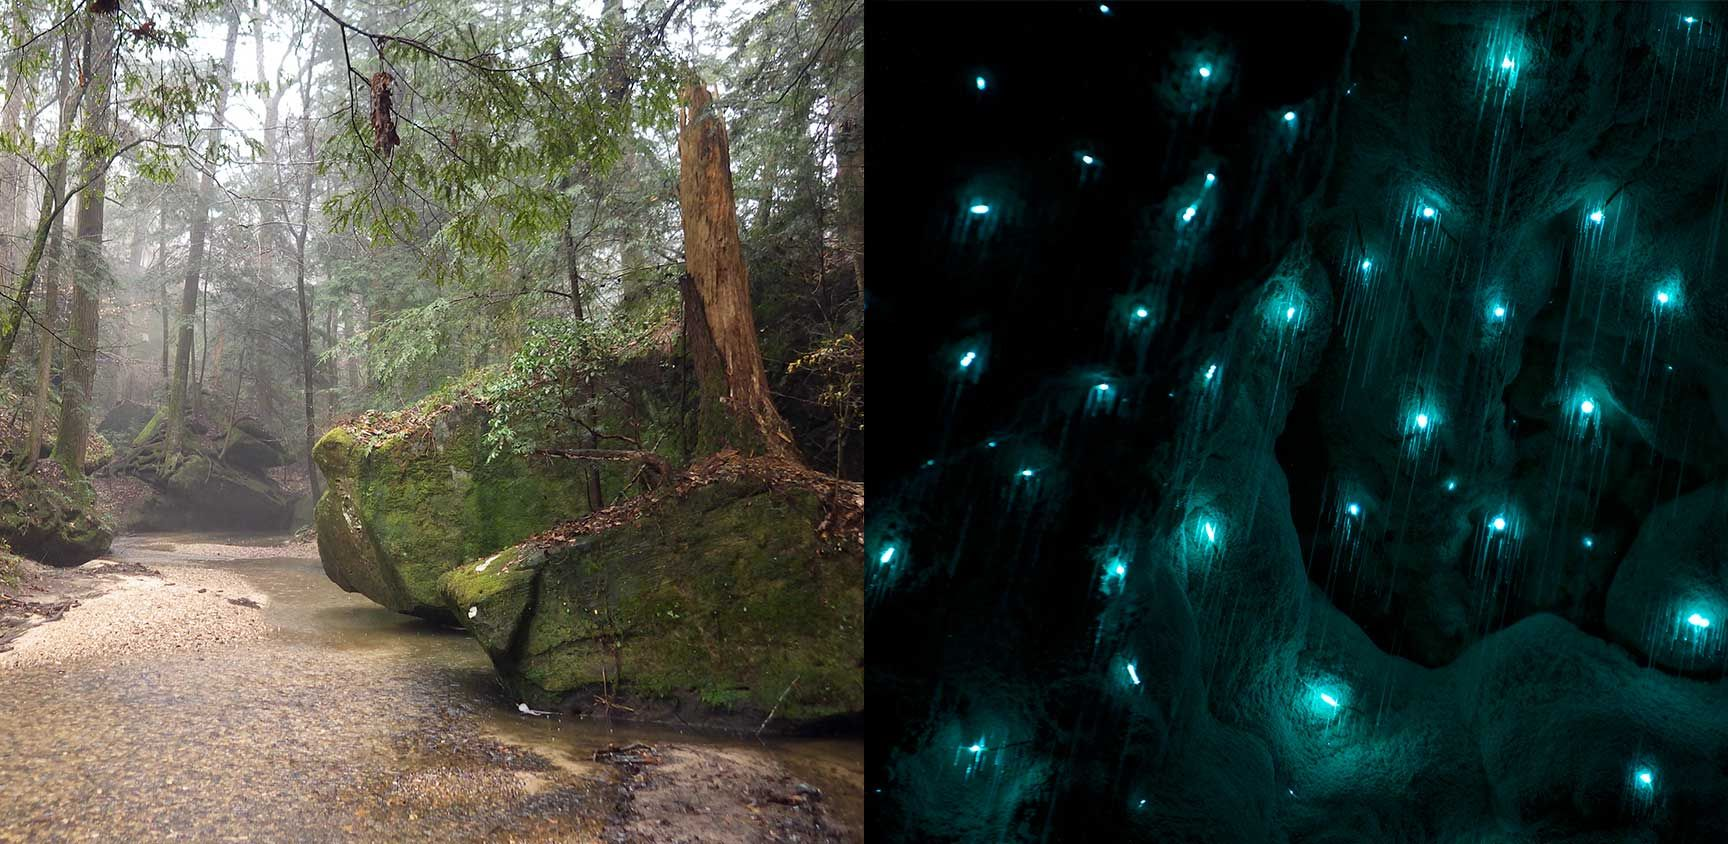 Dismals Canyon An Oasis Of Glowing Insects Glamping Cabins Fun Dismals Canyon Alabama Romantic Camping Travel Fun